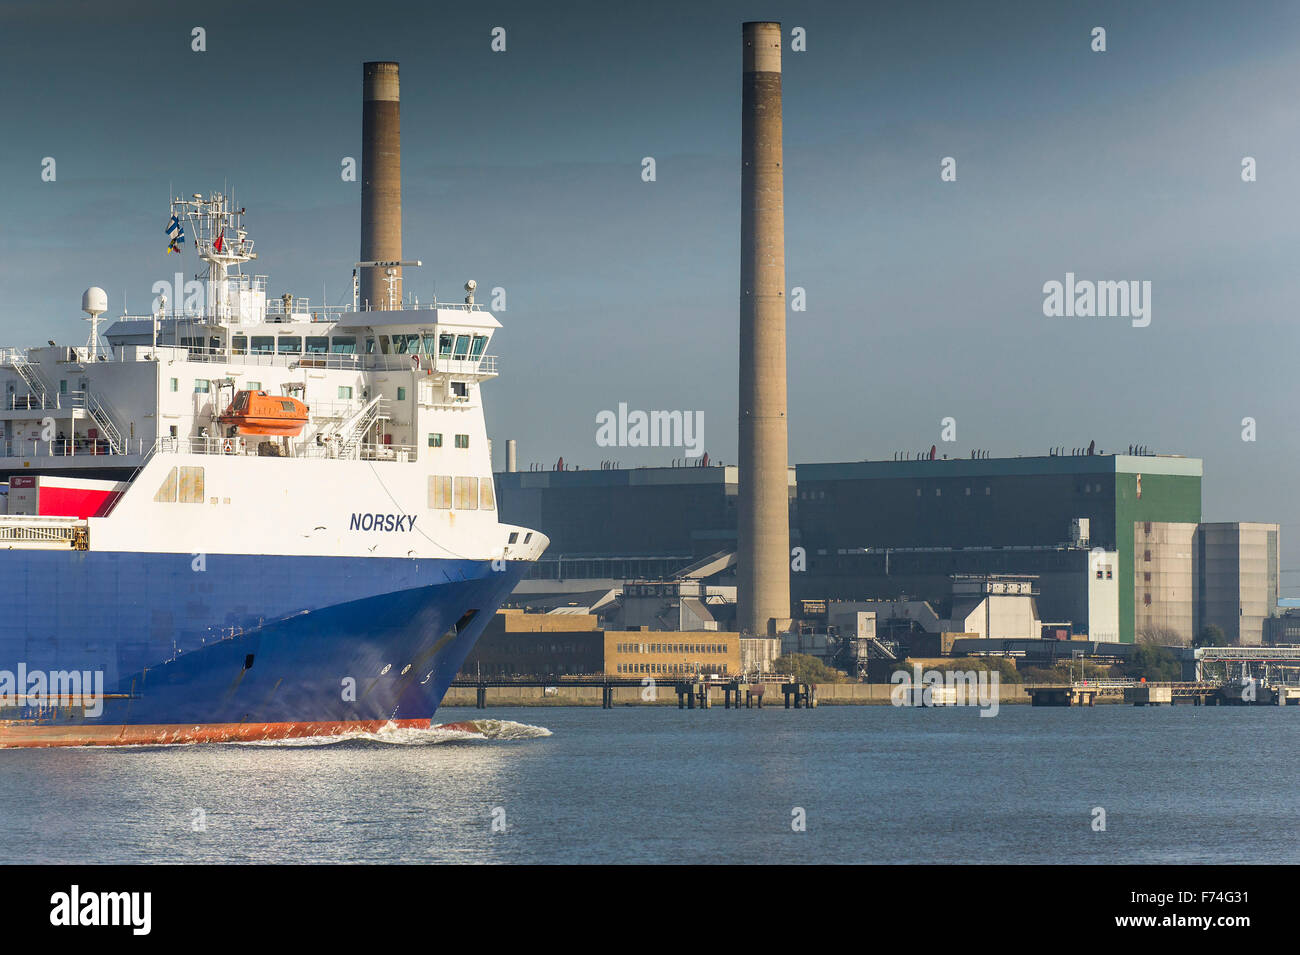 The Ro-Ro cargo ship, Norsky passes Tilbury B Power Station as she steams downriver on the River Thames. - Stock Image